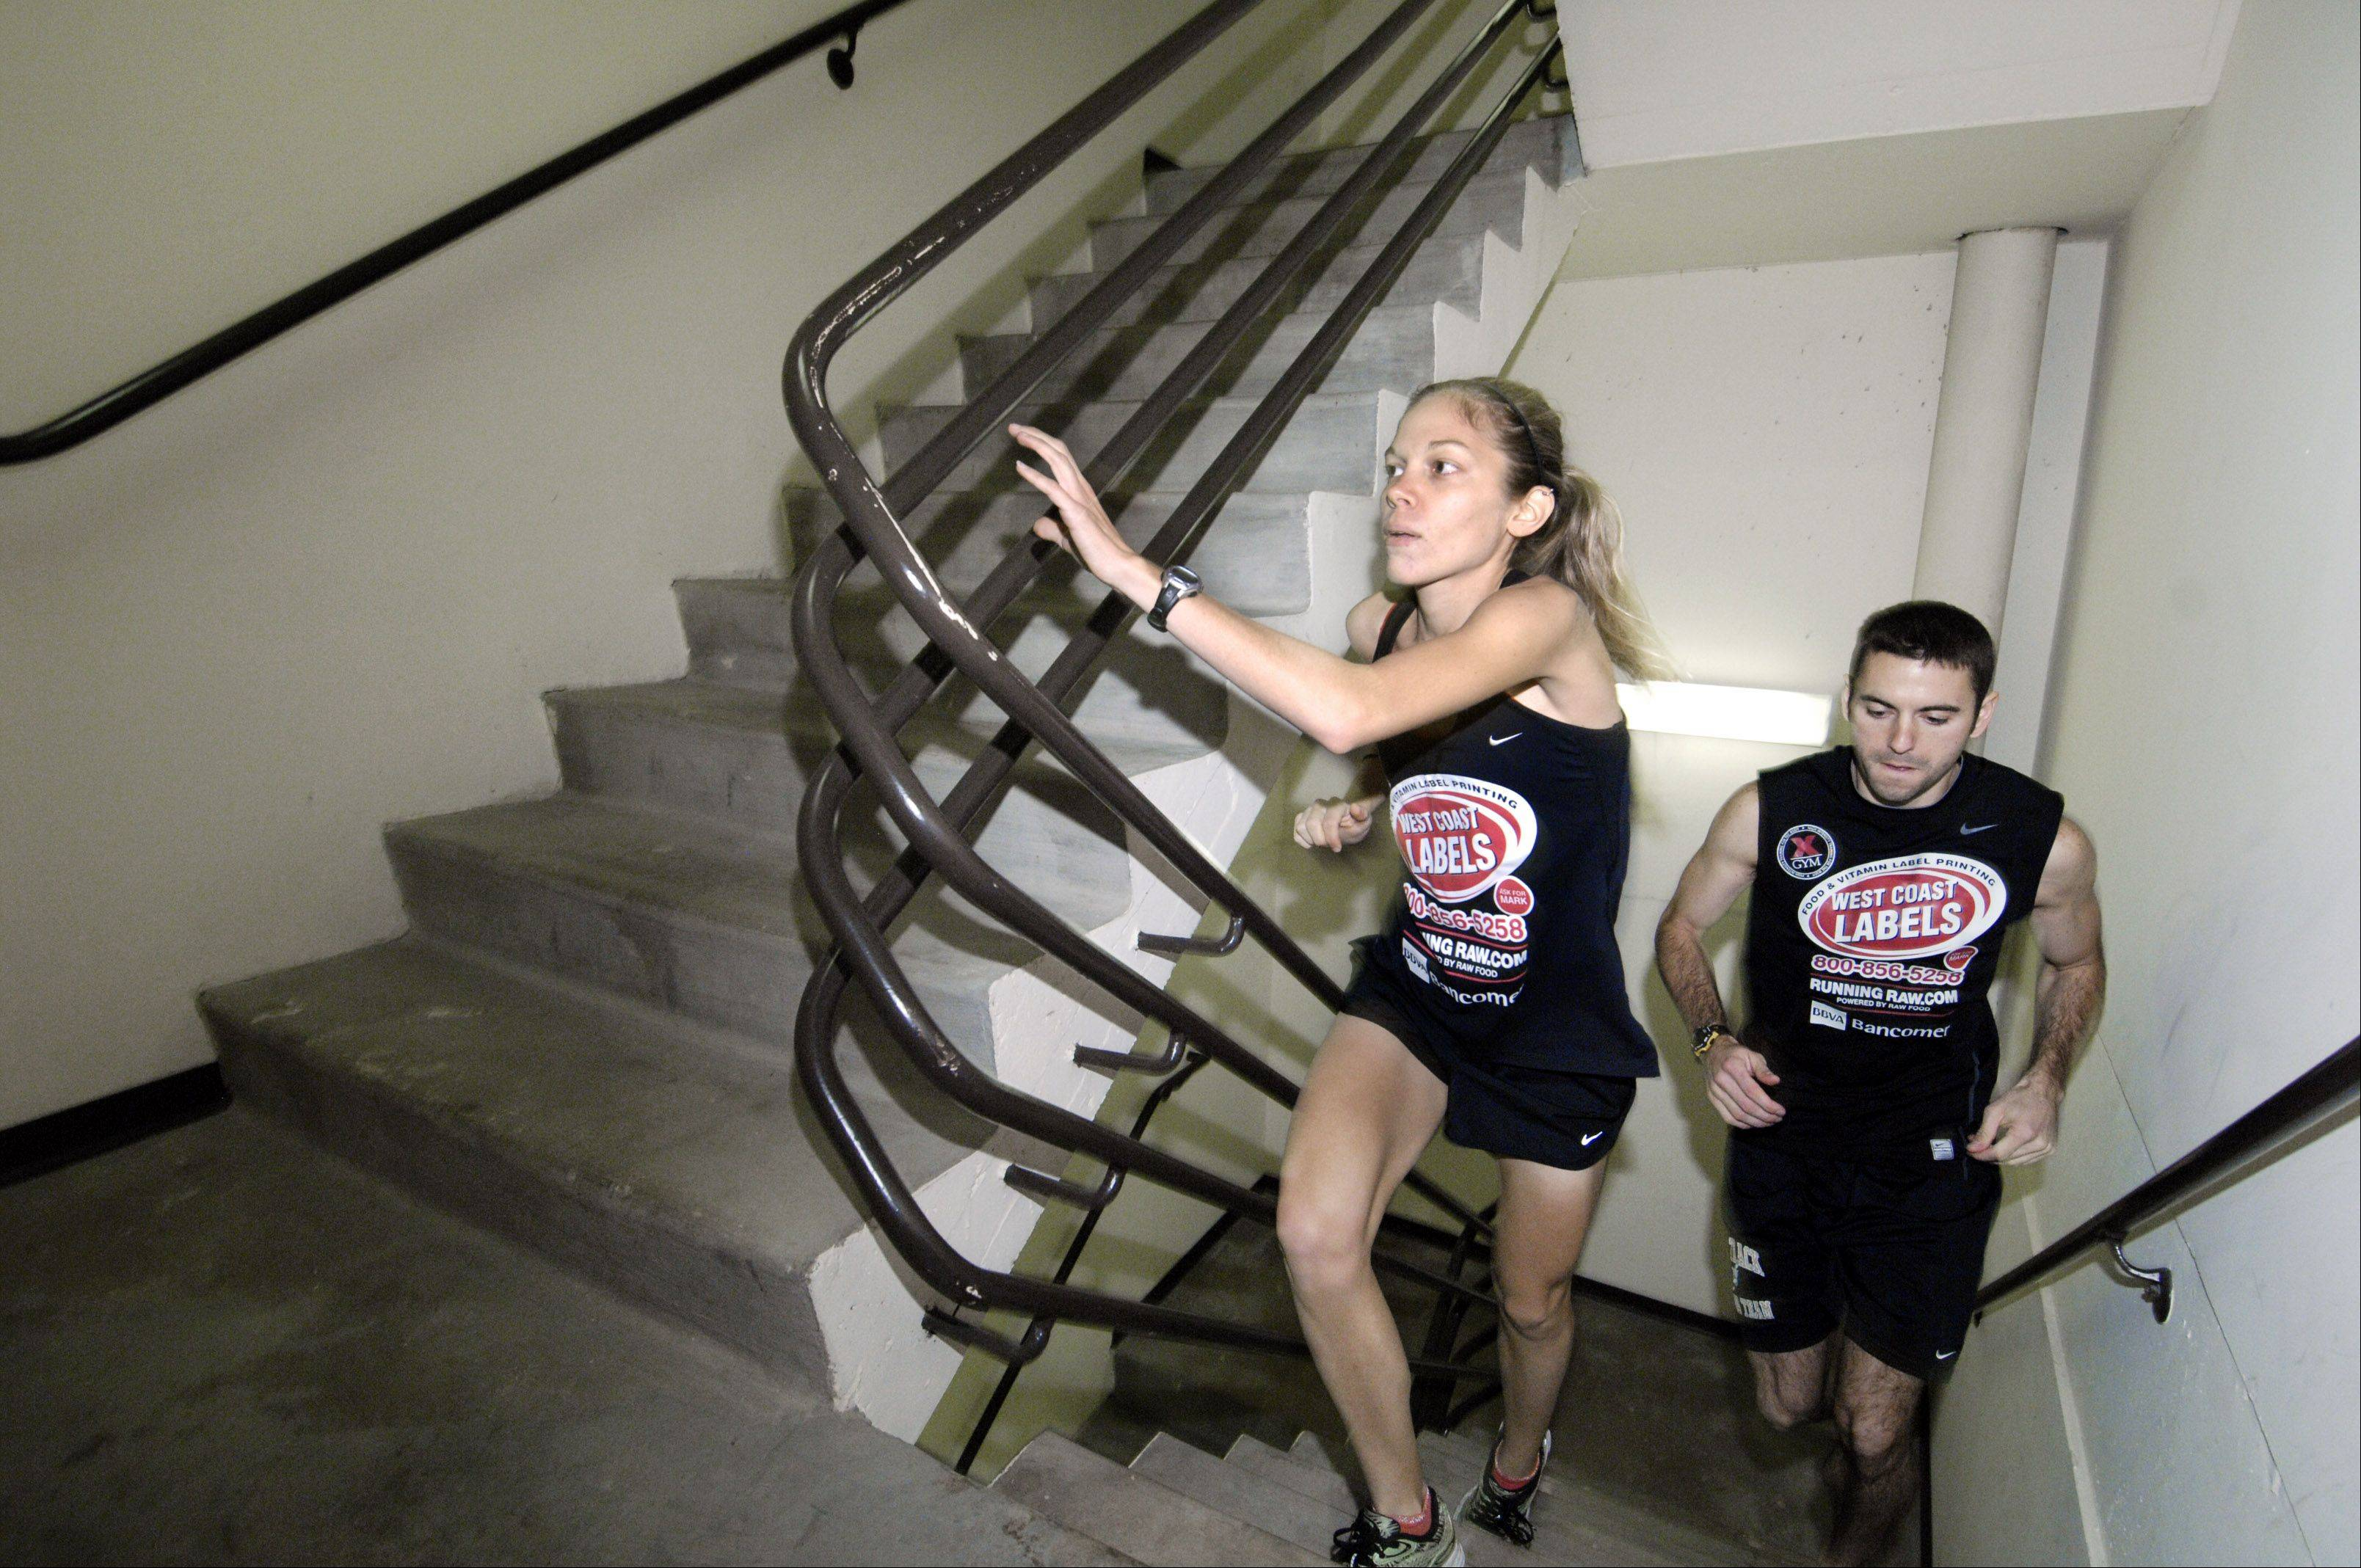 Schaumburg resident Kristin Frey, 28, will join a team of four attempting a new world record by climbing stairs for 24 continuous hours Jan. 4 in Jacksonville, Fla.